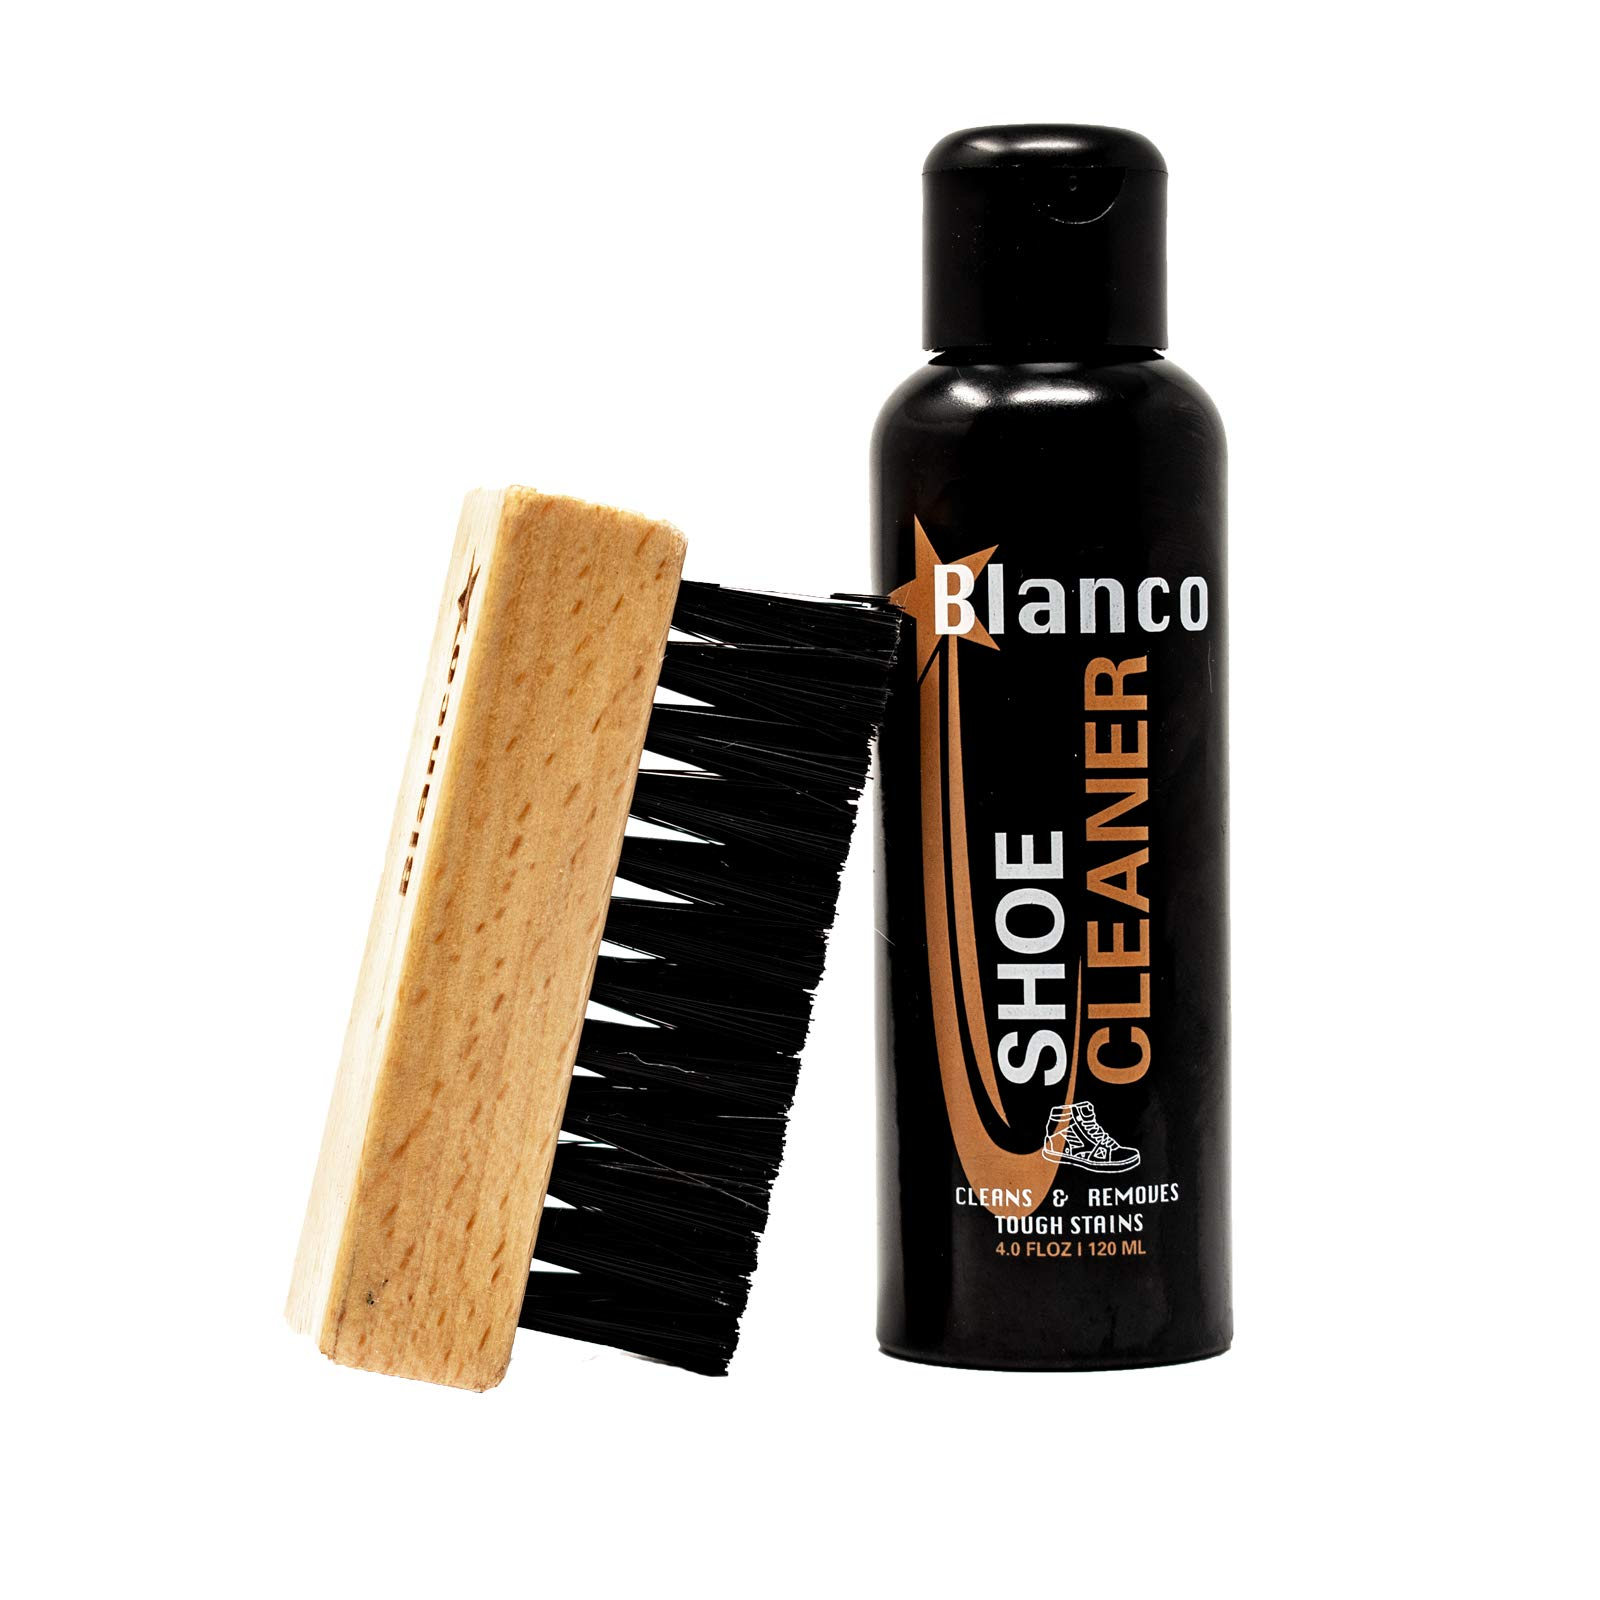 Blanco Shoe Cleaner Kit for all Shoes, Suede Fabric Cleaner Kit with Brush and Powerful (ALL NATURAL) Foaming Detergent Cleans Suede, Tennis Shoes, Leather Shoes, and more - Blanco Shoe Cleaner